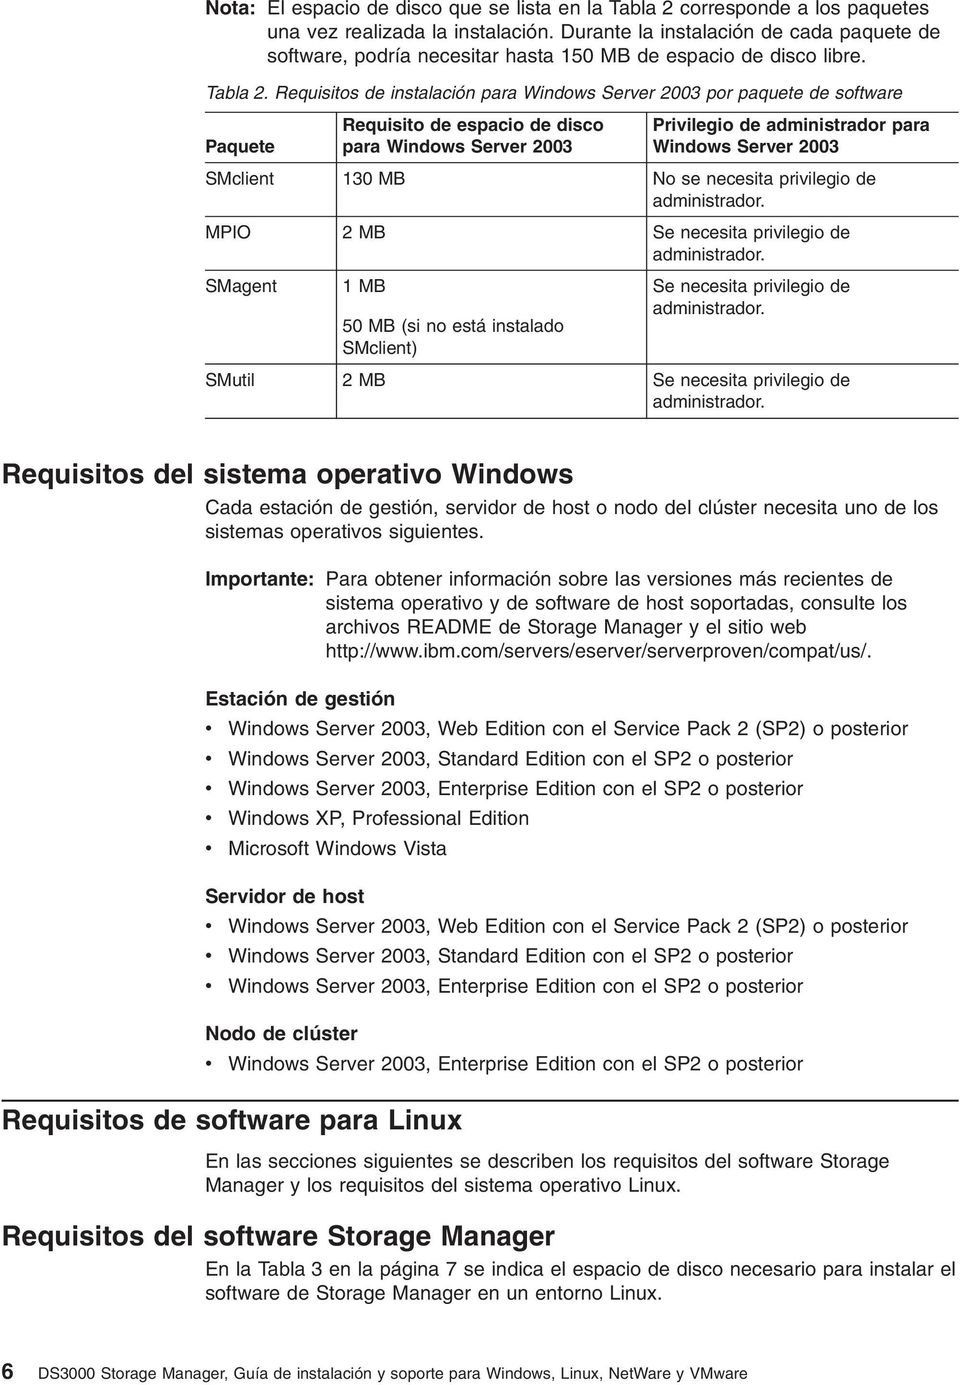 Requisitos de instalación para Windows Server 2003 por paquete de software Paquete Requisito de espacio de disco para Windows Server 2003 Privilegio de administrador para Windows Server 2003 SMclient